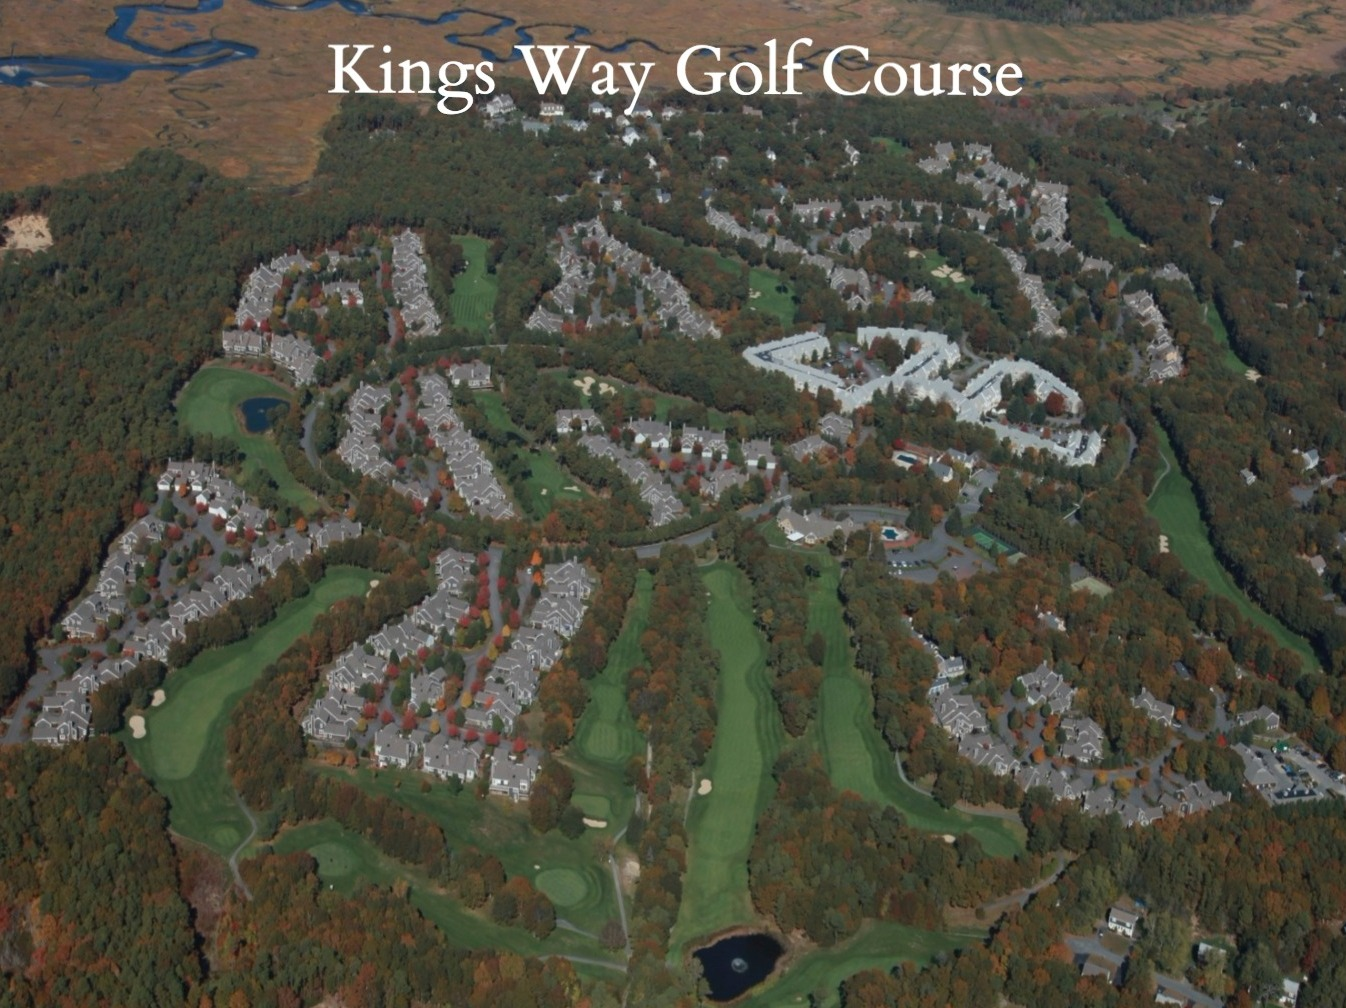 Kings Way Golf Course